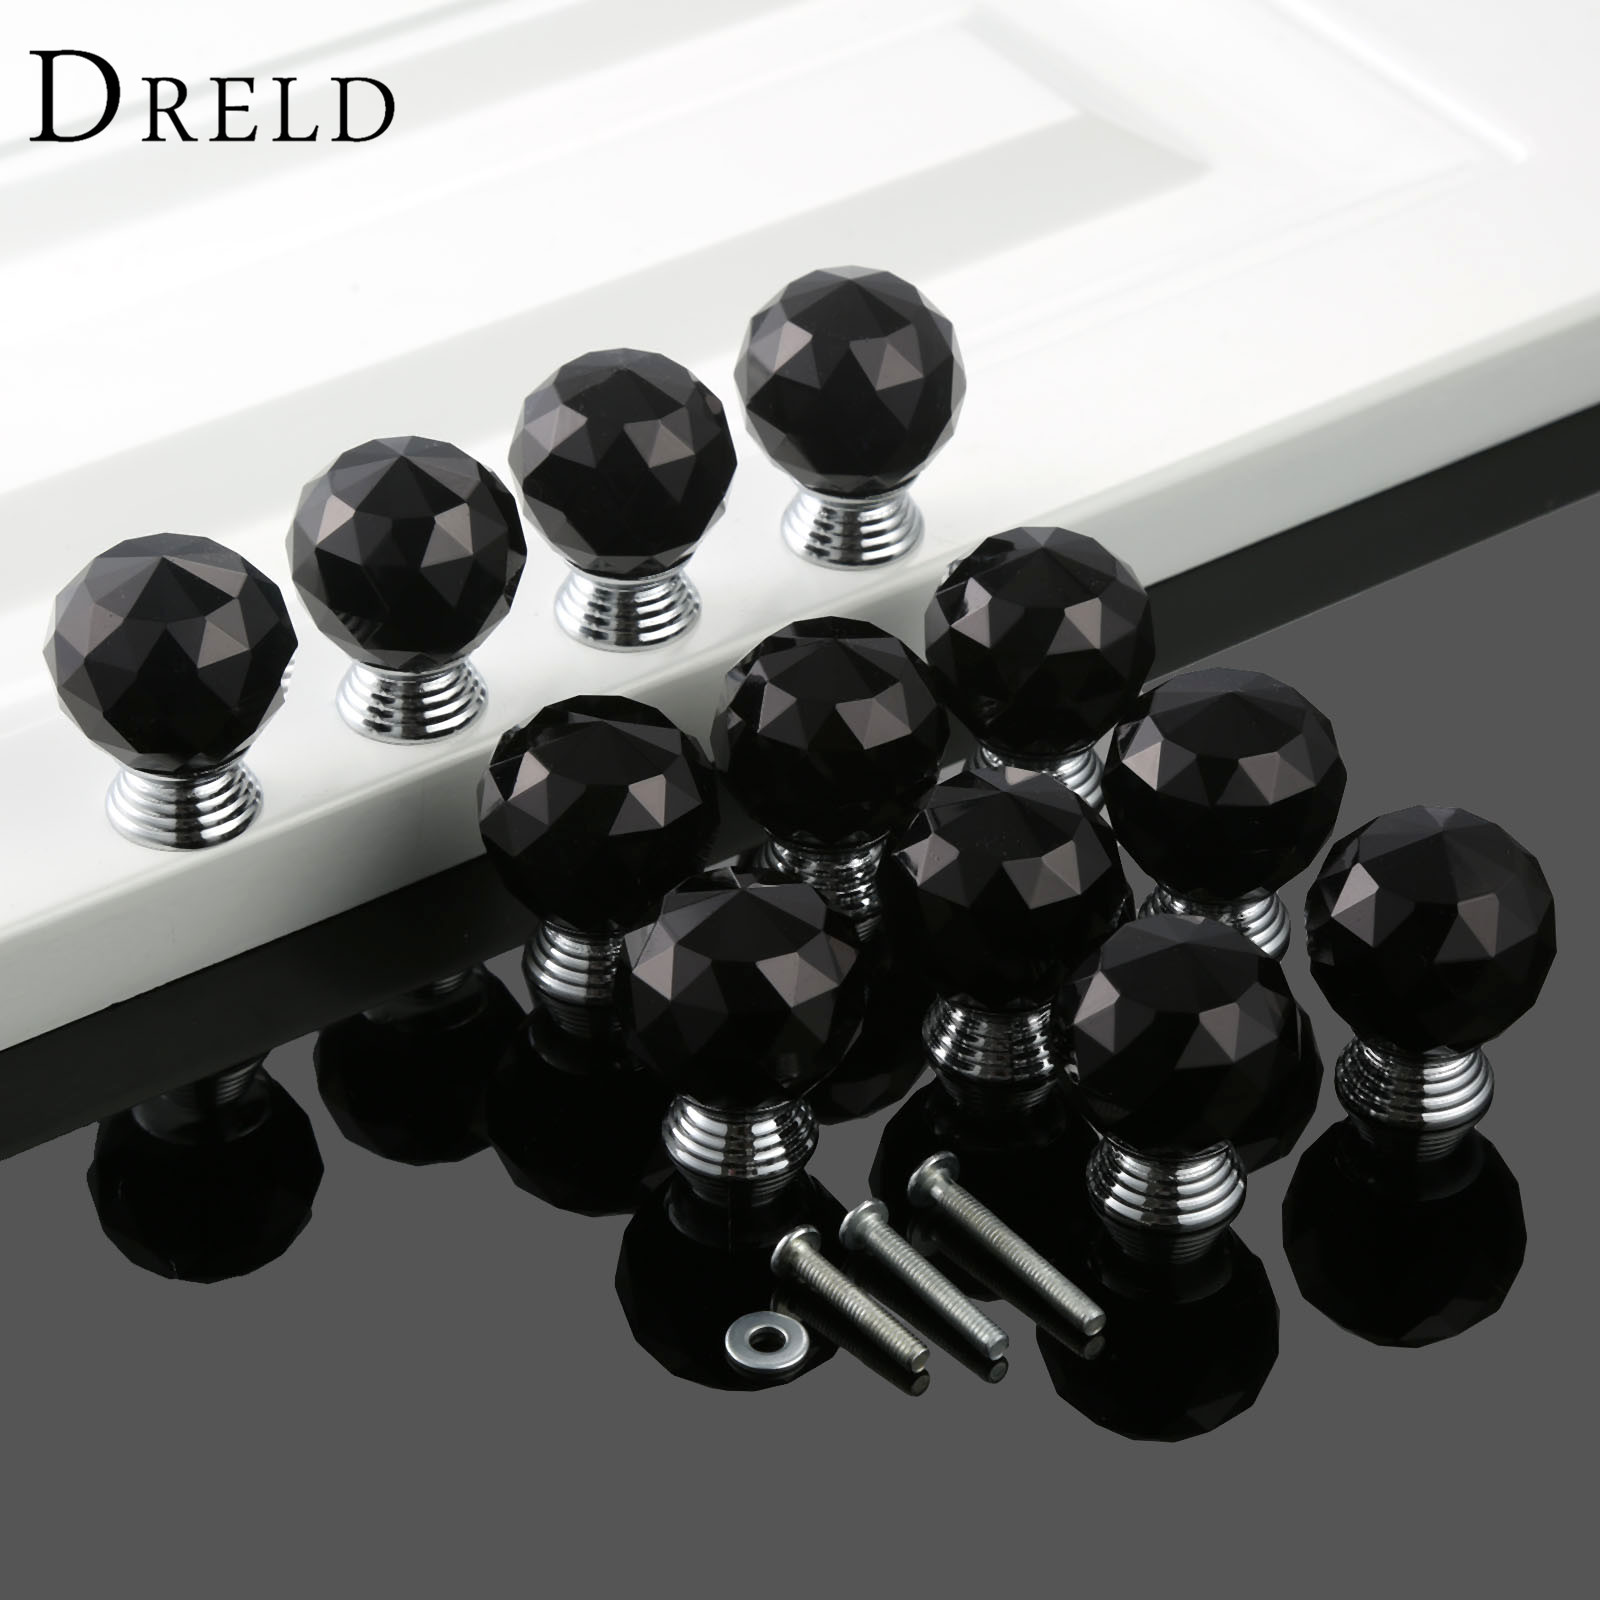 DRELD 12Pcs 30mm Round Black Crystal Diamond Cabinet Knobs and Handles Dresser Drawer Furniture Handles Door Knob + 36Pcs Screws 5pcs knobs 30mm clear crystal glass door handles diamond drawer cabinet furniture kitchen knob with screws